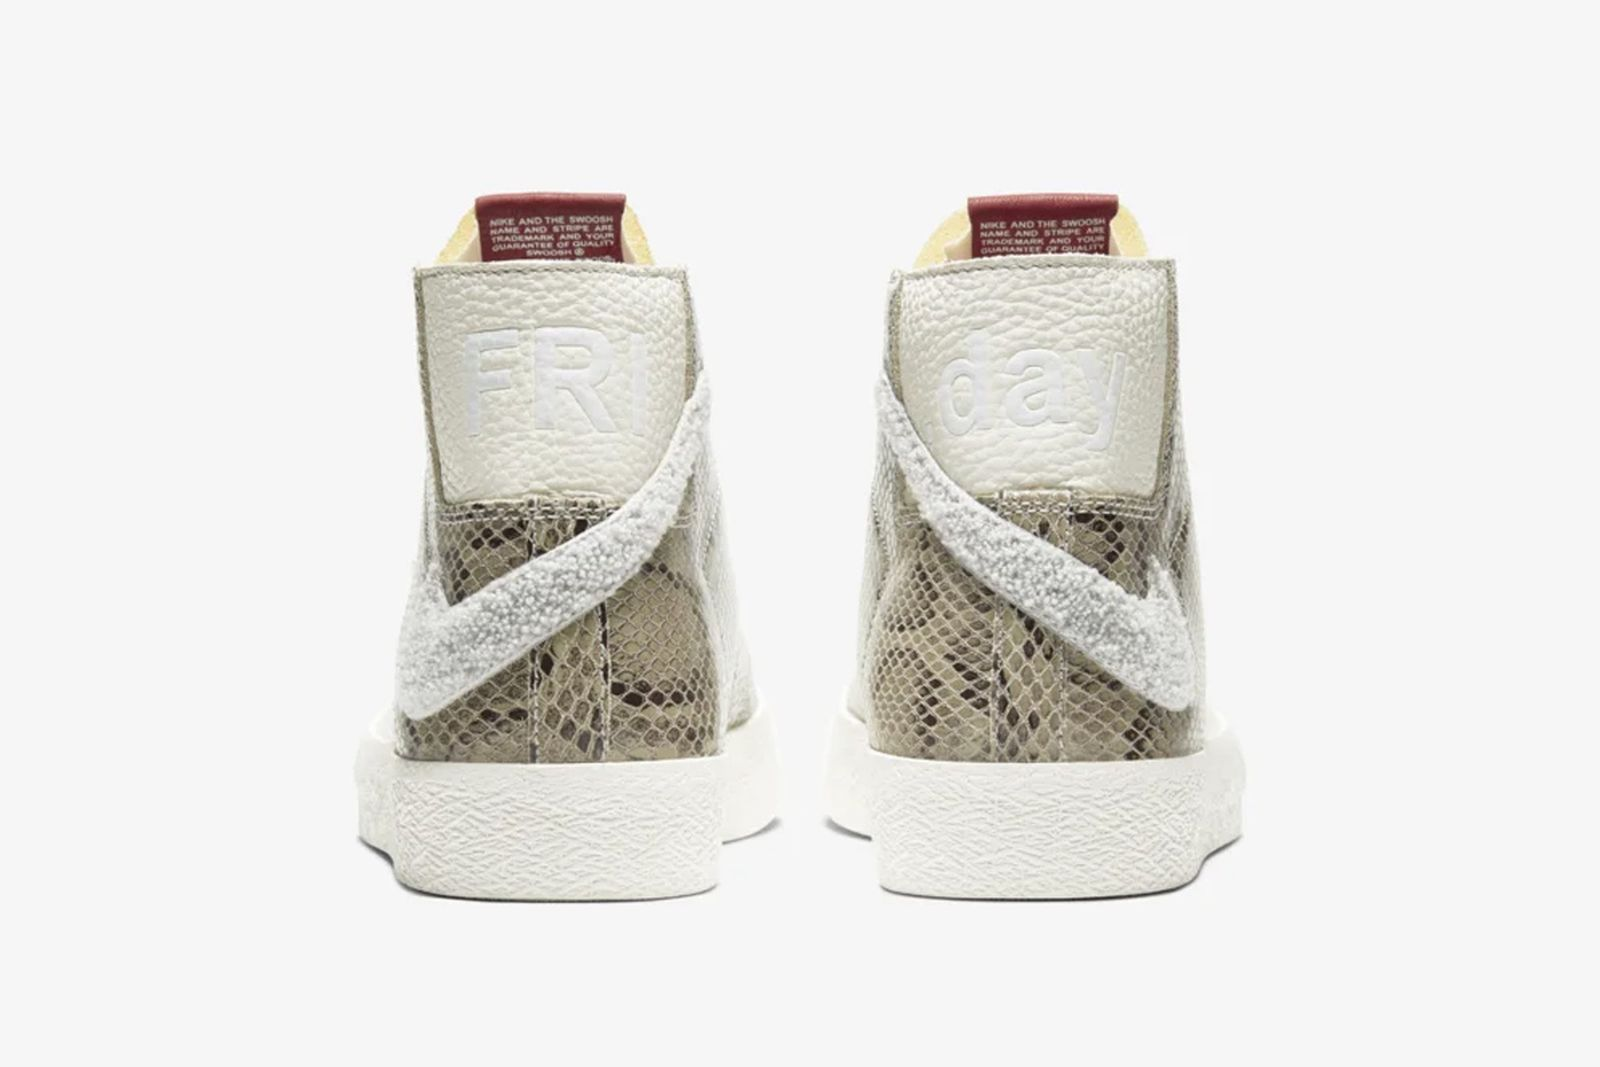 soulland-nike-blazer-mid-release-date-price-product-05